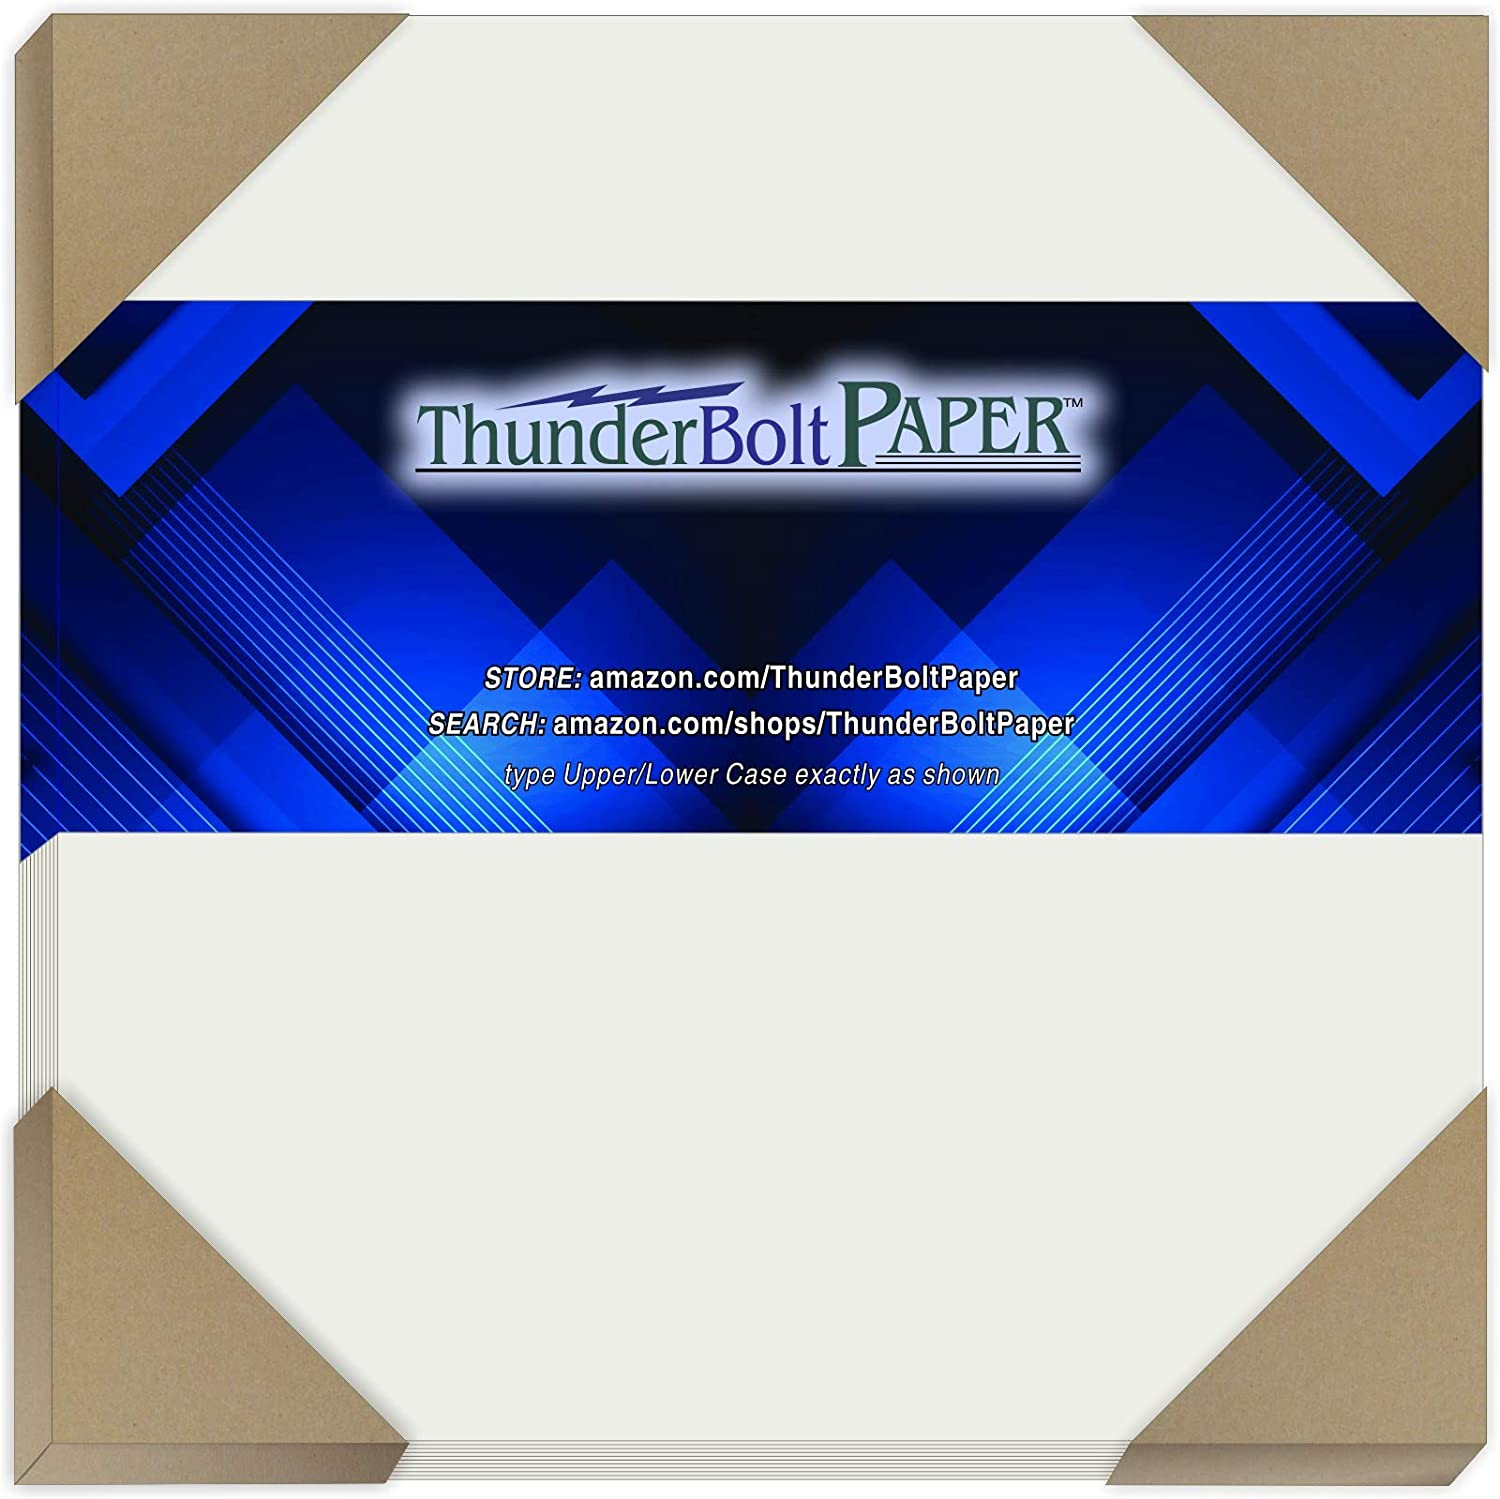 150 Soft Off-White Translucent 17# Thin Sheets Tracing Photo|Picture-Frame Size 8 X 10 Not a Clear Transparent Fun or Formal Use 17 lb//Pound Light Weight Fine Quality Paper 8X10 Inches